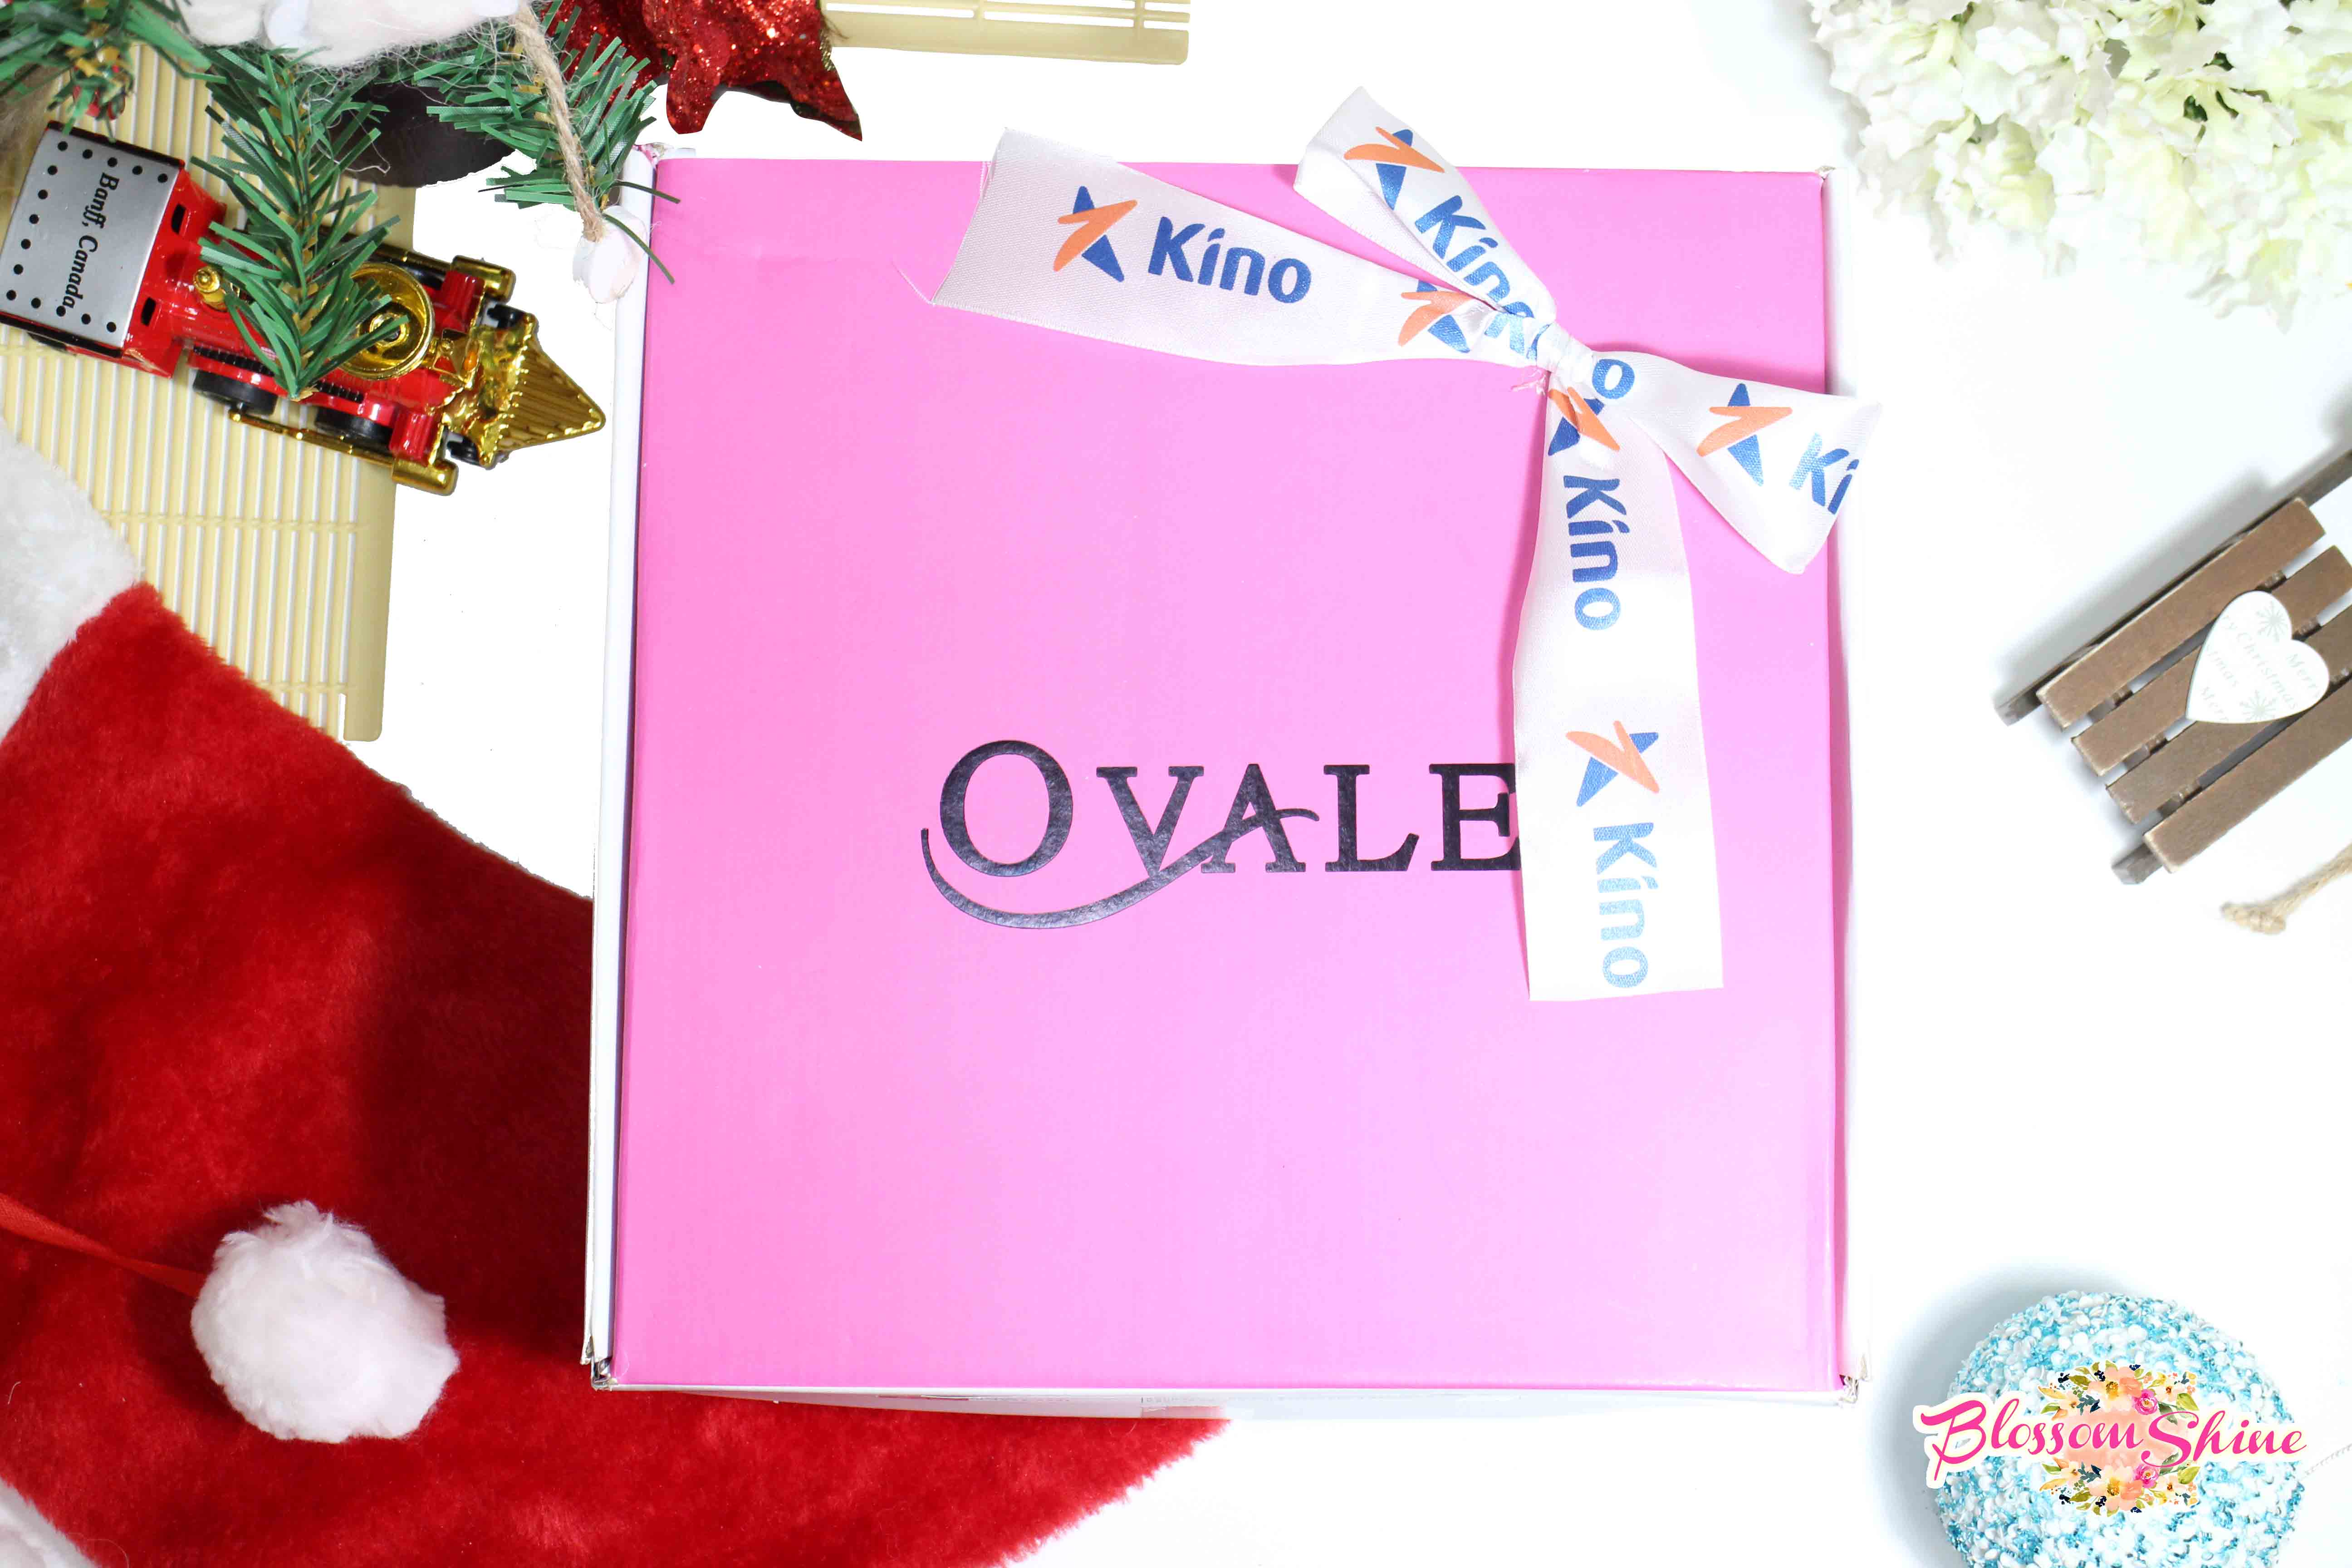 Ovale Beauty – Unboxing Ovale Beauty Box